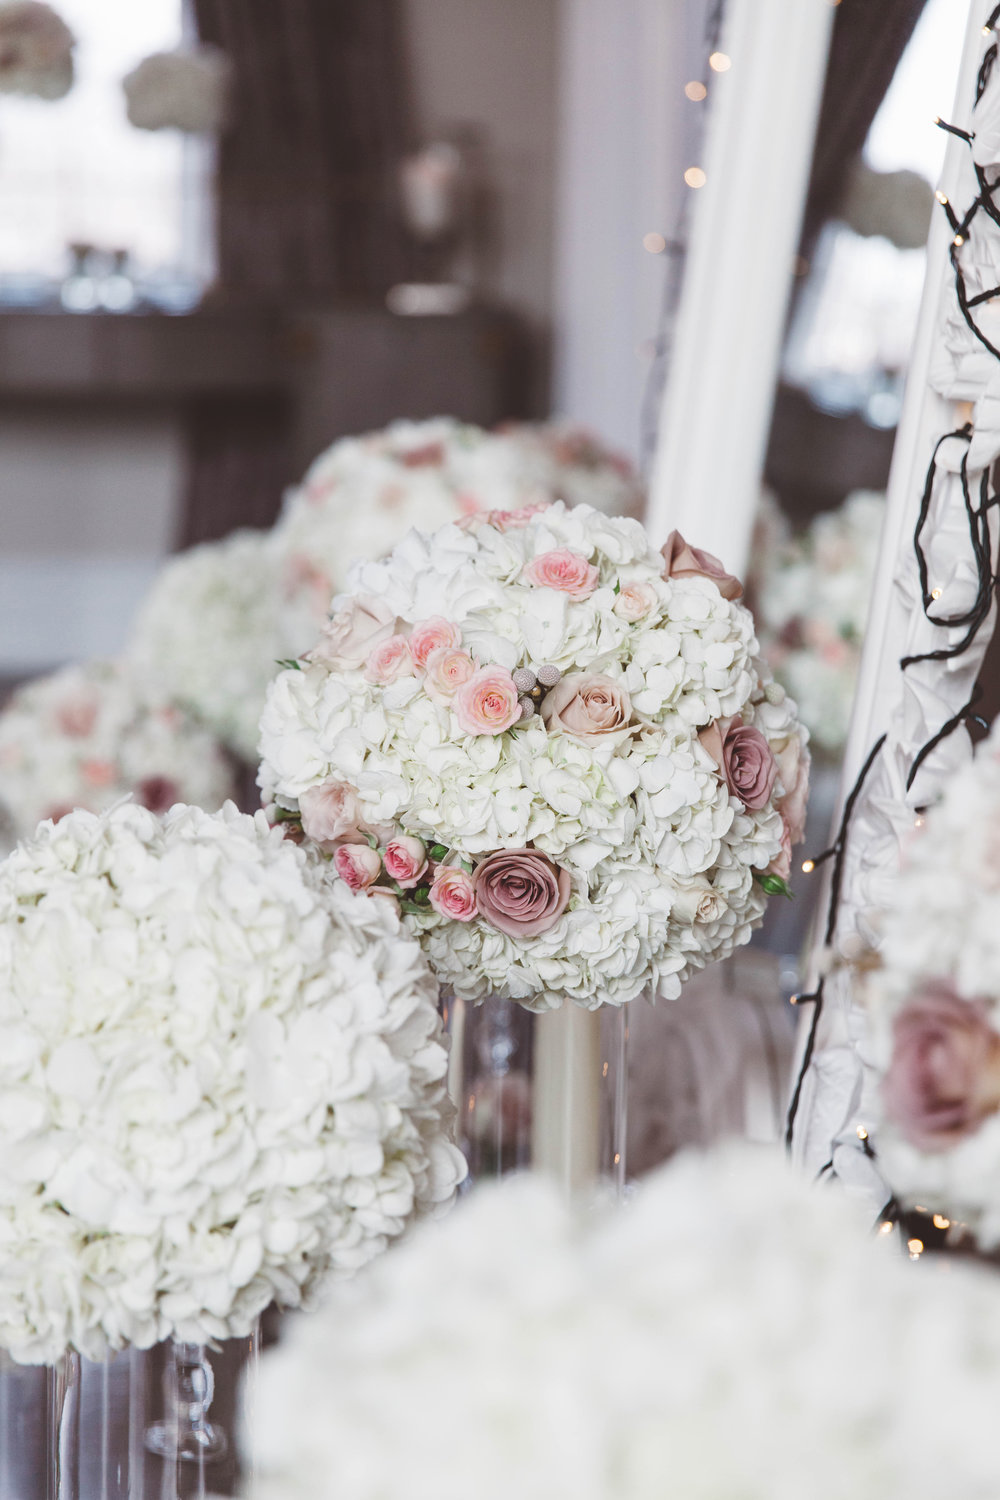 Soft pink and Hydrangea wedding floral displays at amalfi white, by award winning Derbyshire florist, Tineke